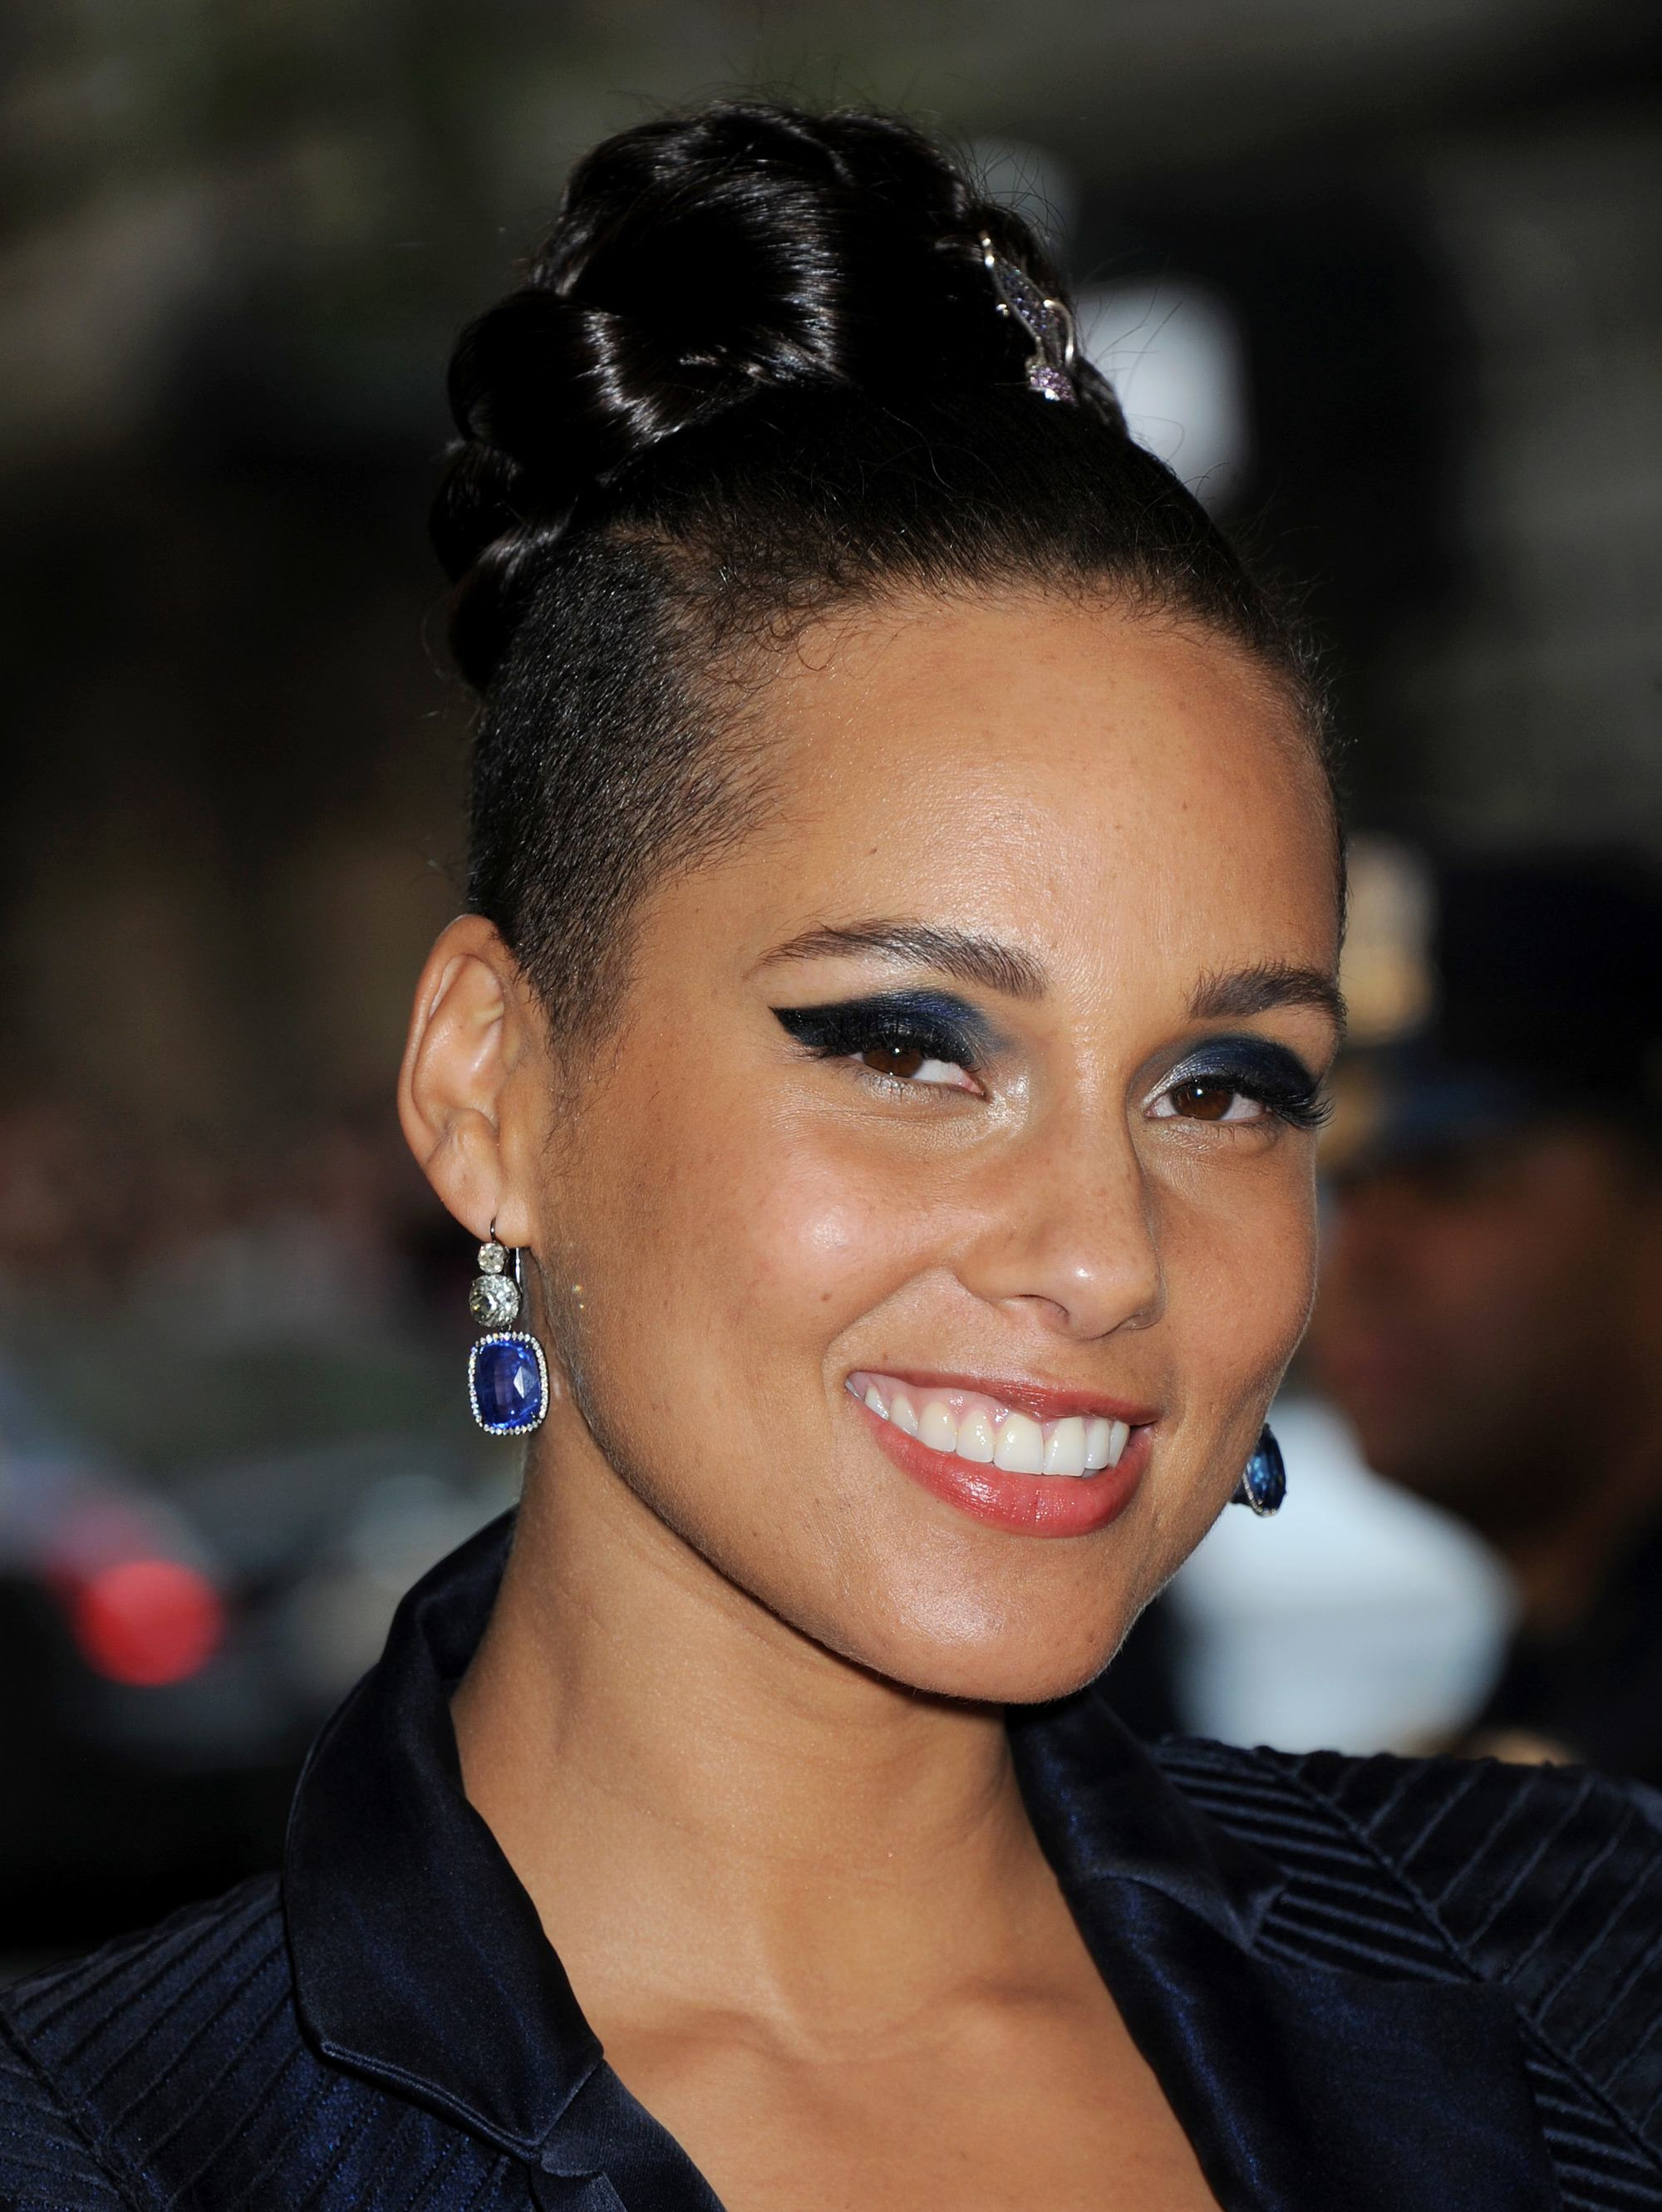 alicia keys at the 2015 costume institute gala benefit with a braided bun hairstyle with a shaved undercut